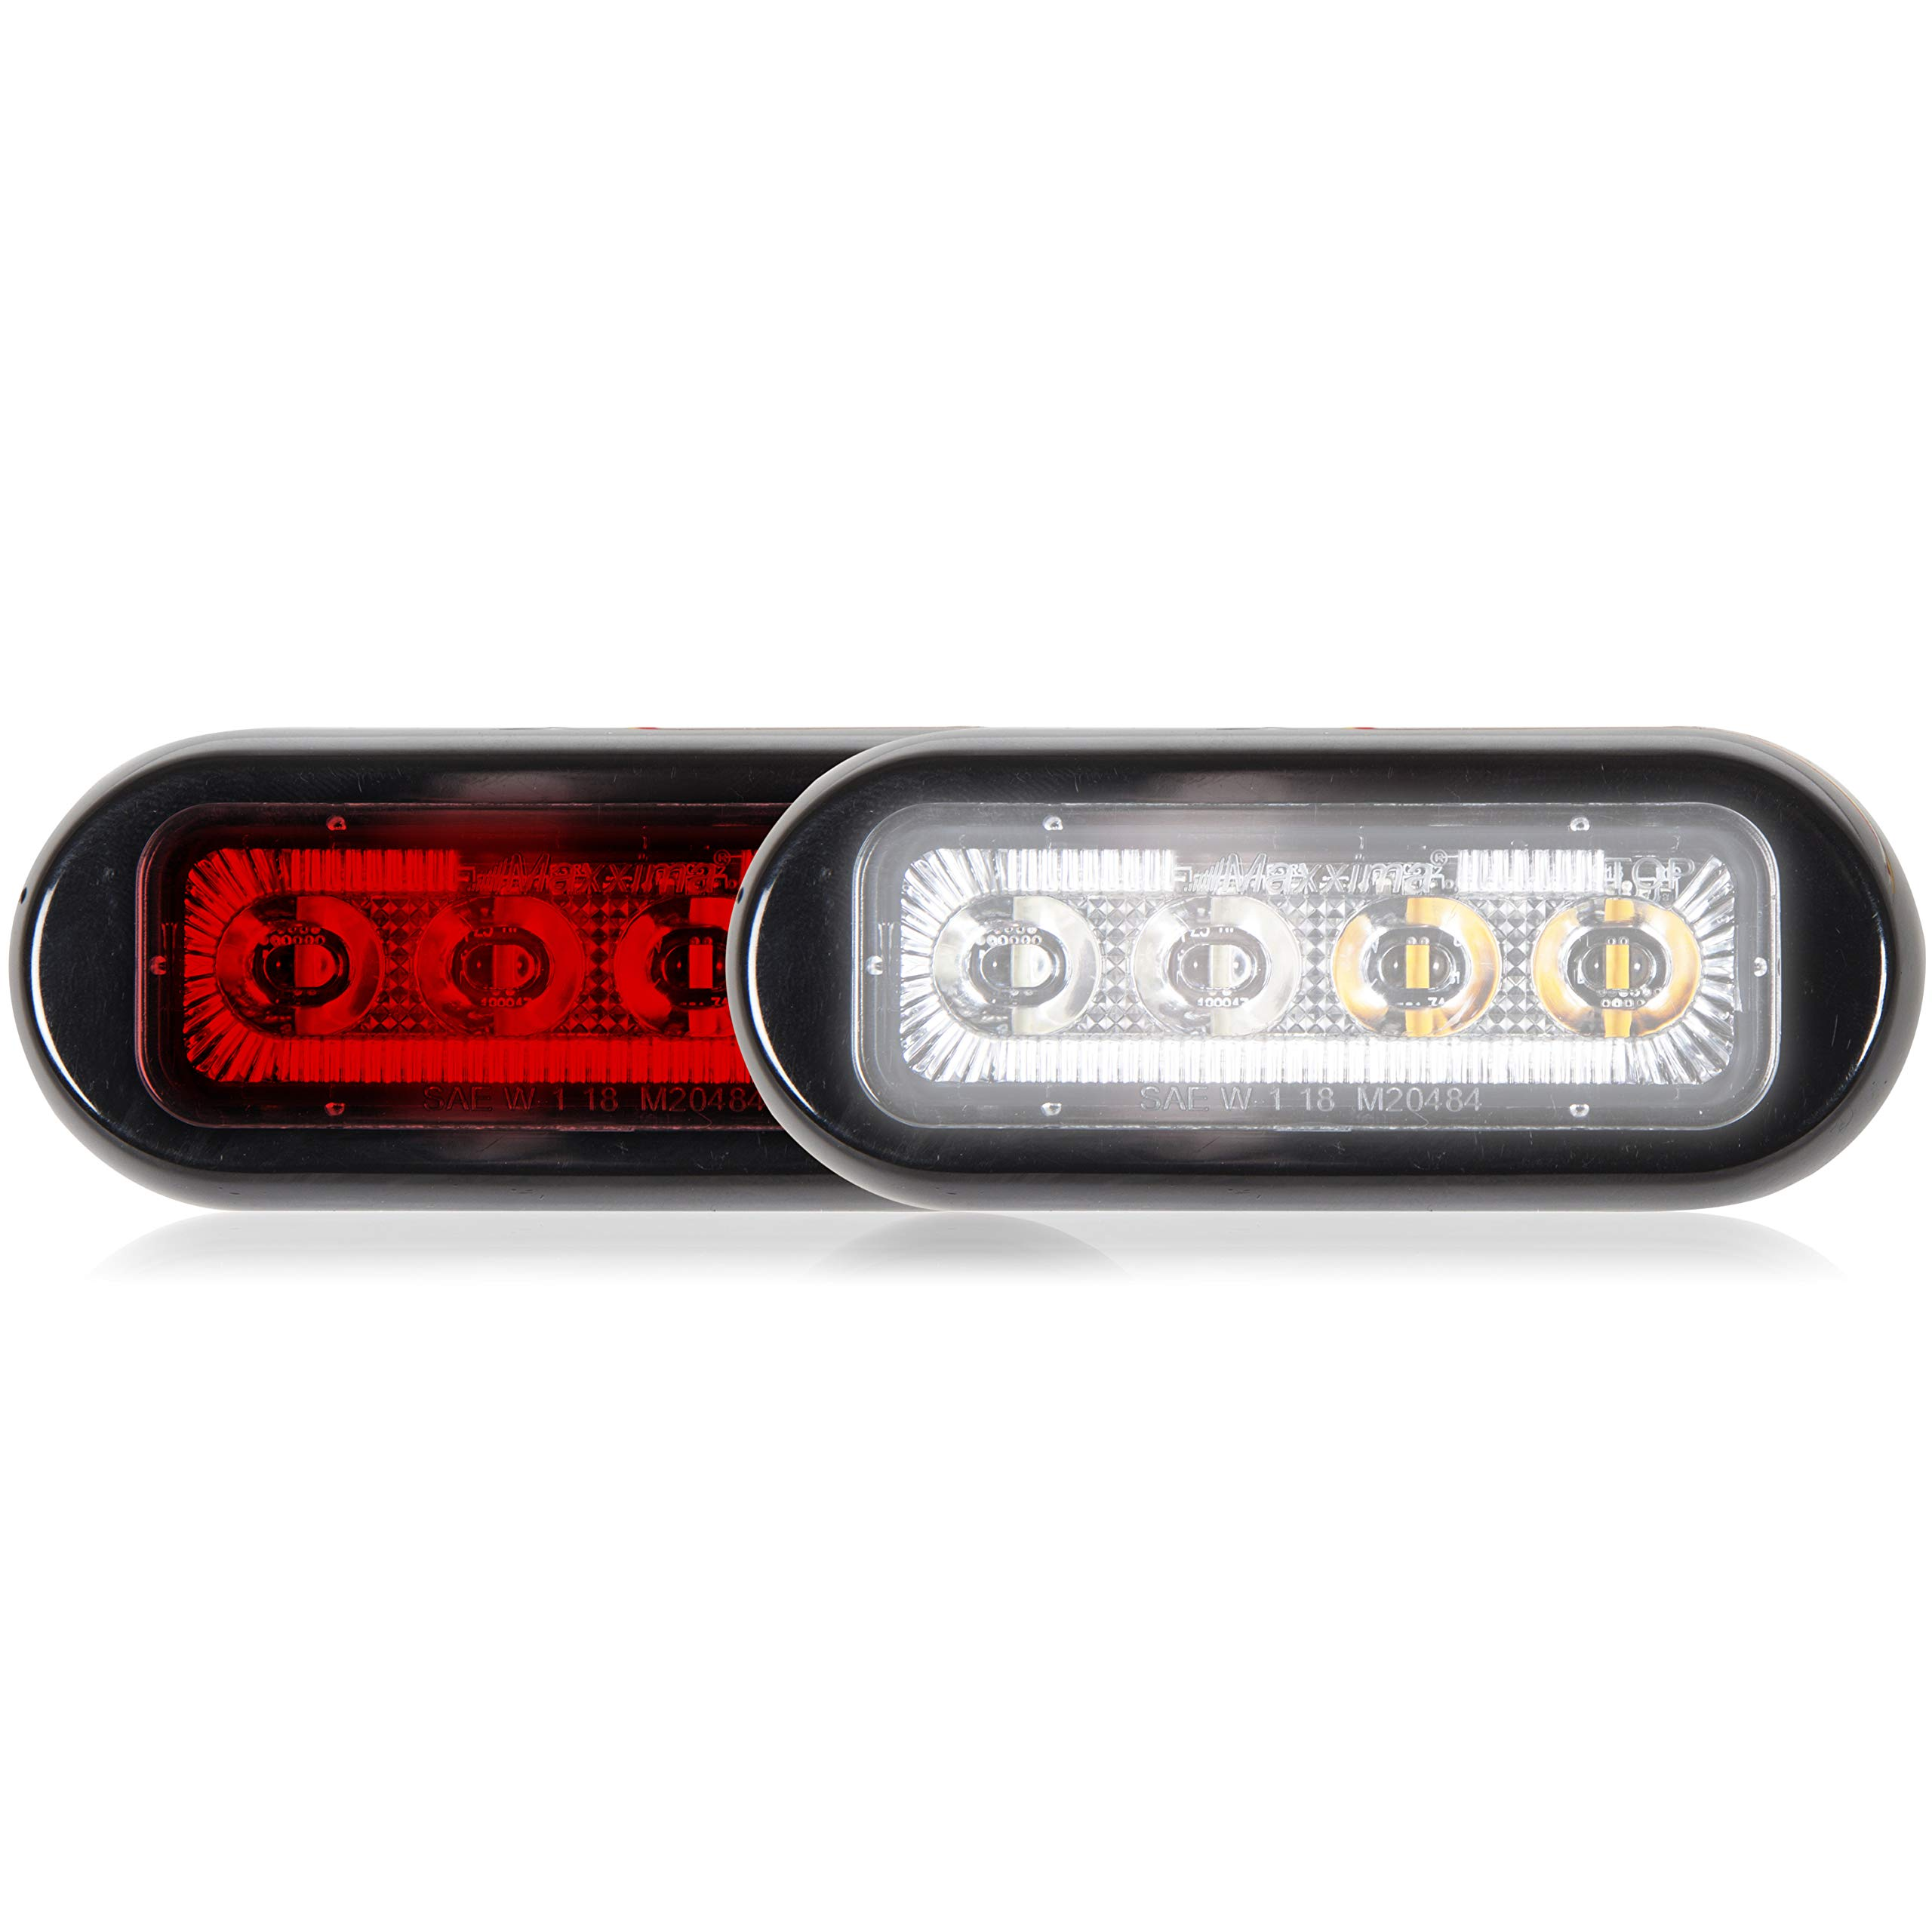 Maxxima M20484RWCL-DC 8 LED Rectangular Surface Mount Warning & Emergency Dual Color Red/White Clear Lens